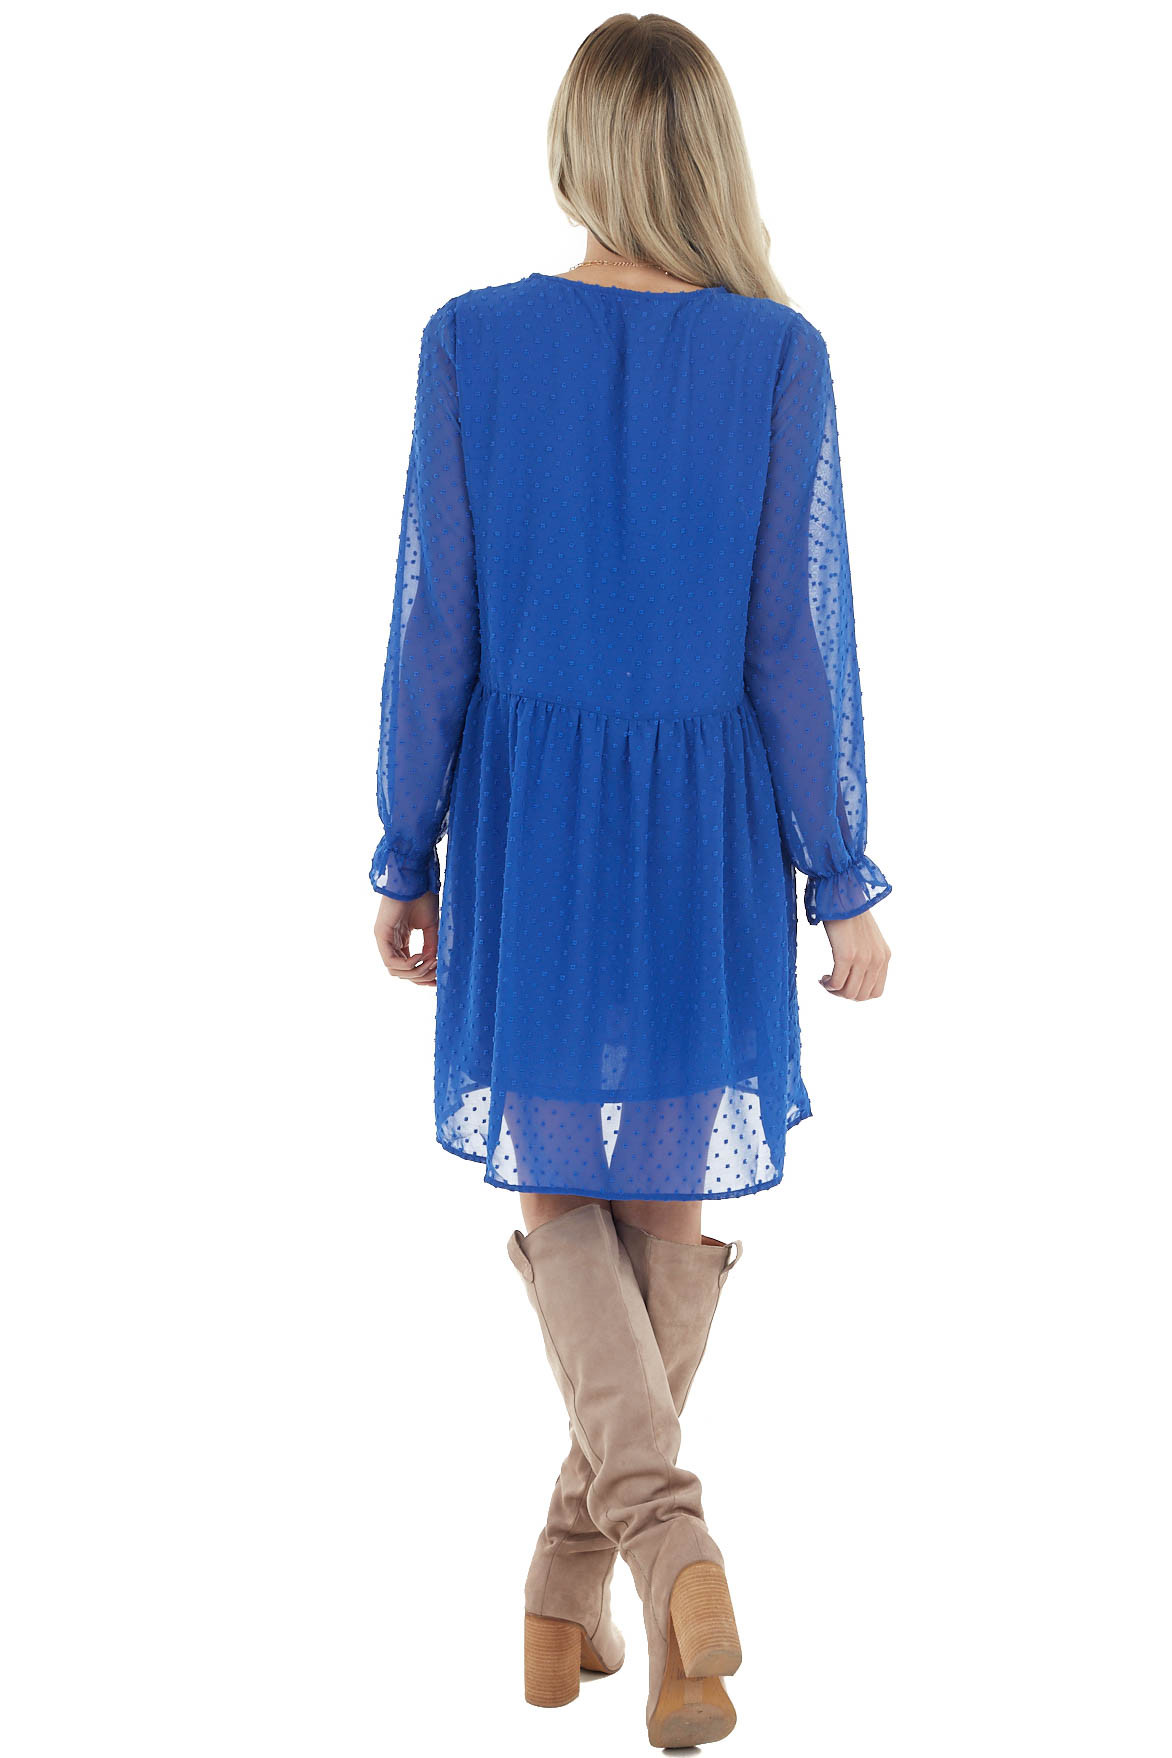 Royal Blue Swiss Dot Babydoll Dress with Long Bubble Sleeves